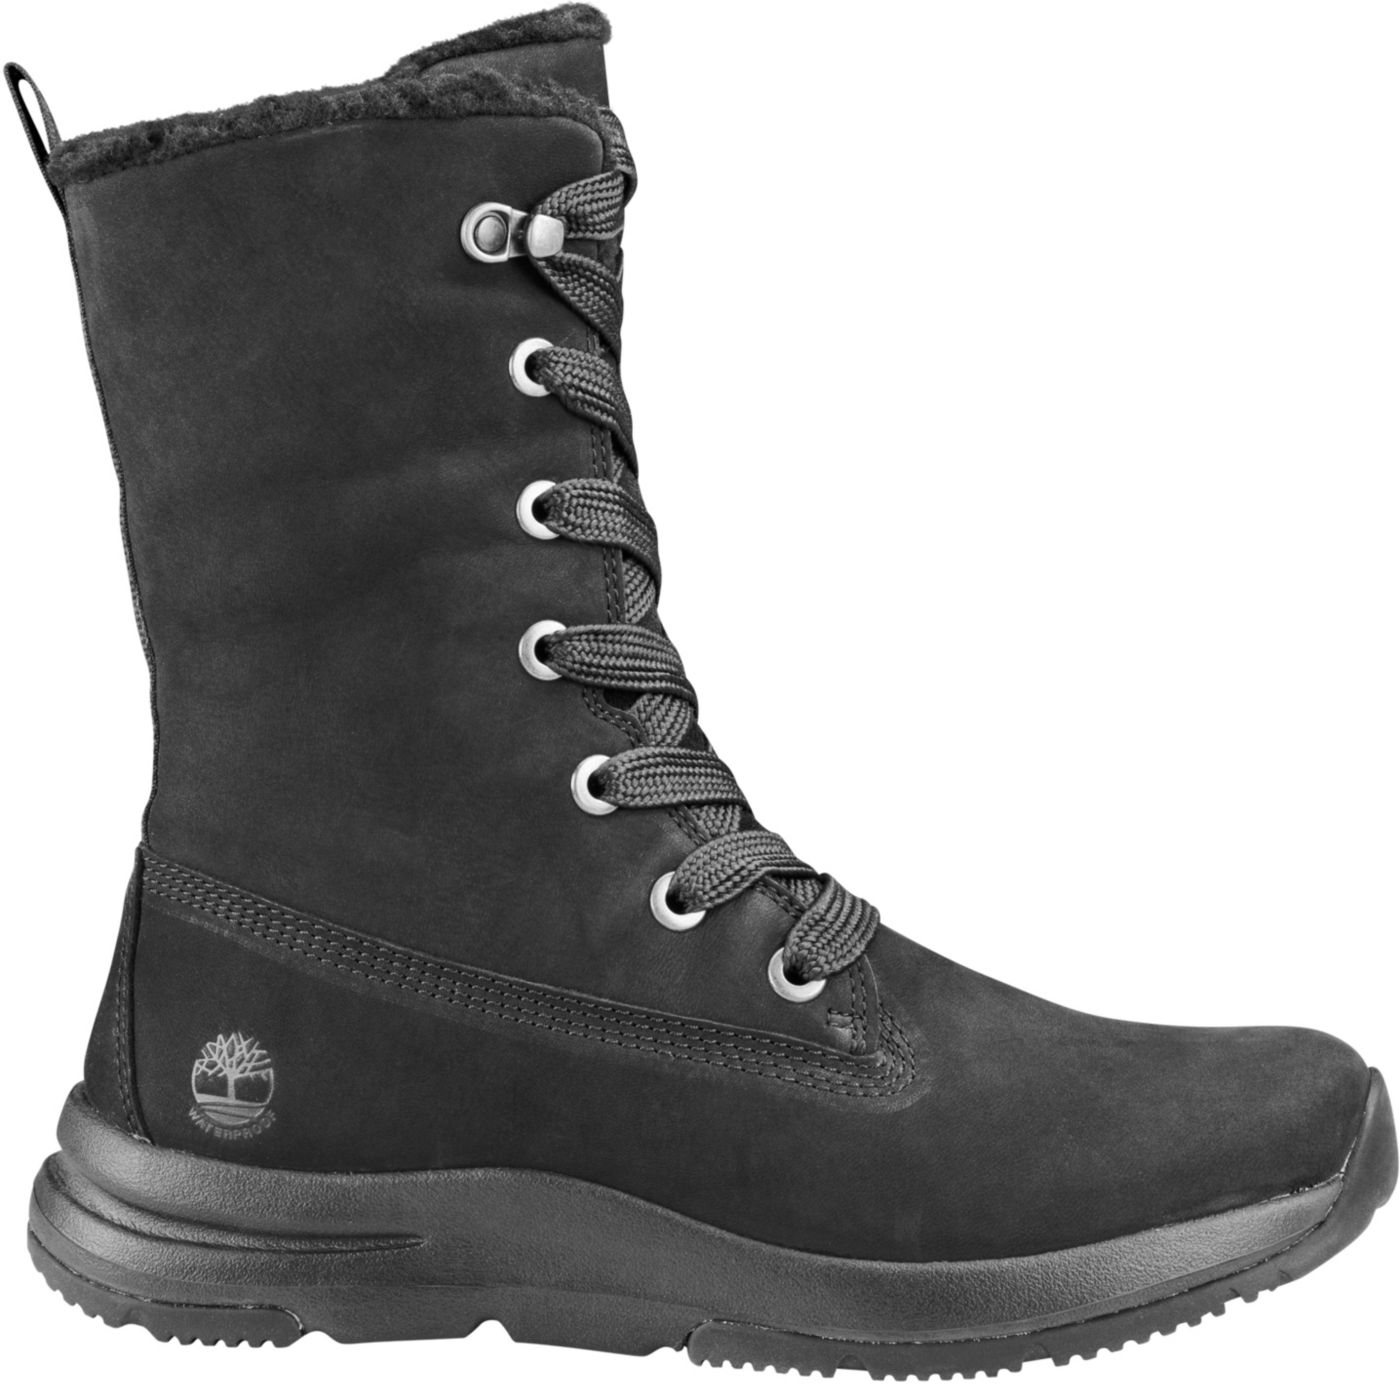 Timberland Women's Mabel Town Mid 200g Waterproof Casual Boots